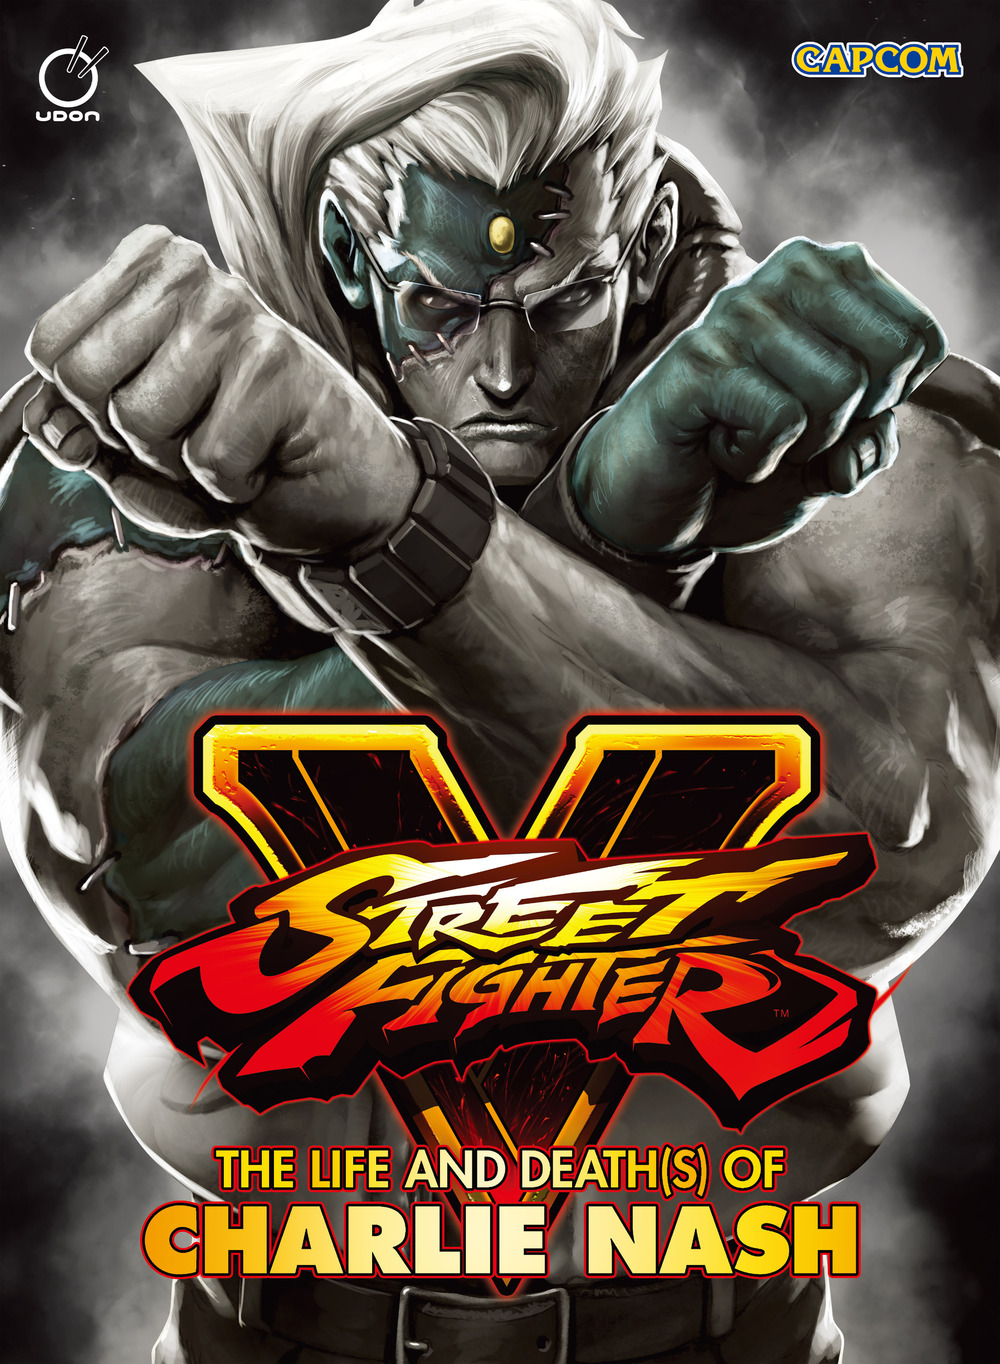 Udon's Street Fighter: The Life and Death(s) of Charlie Nash #1